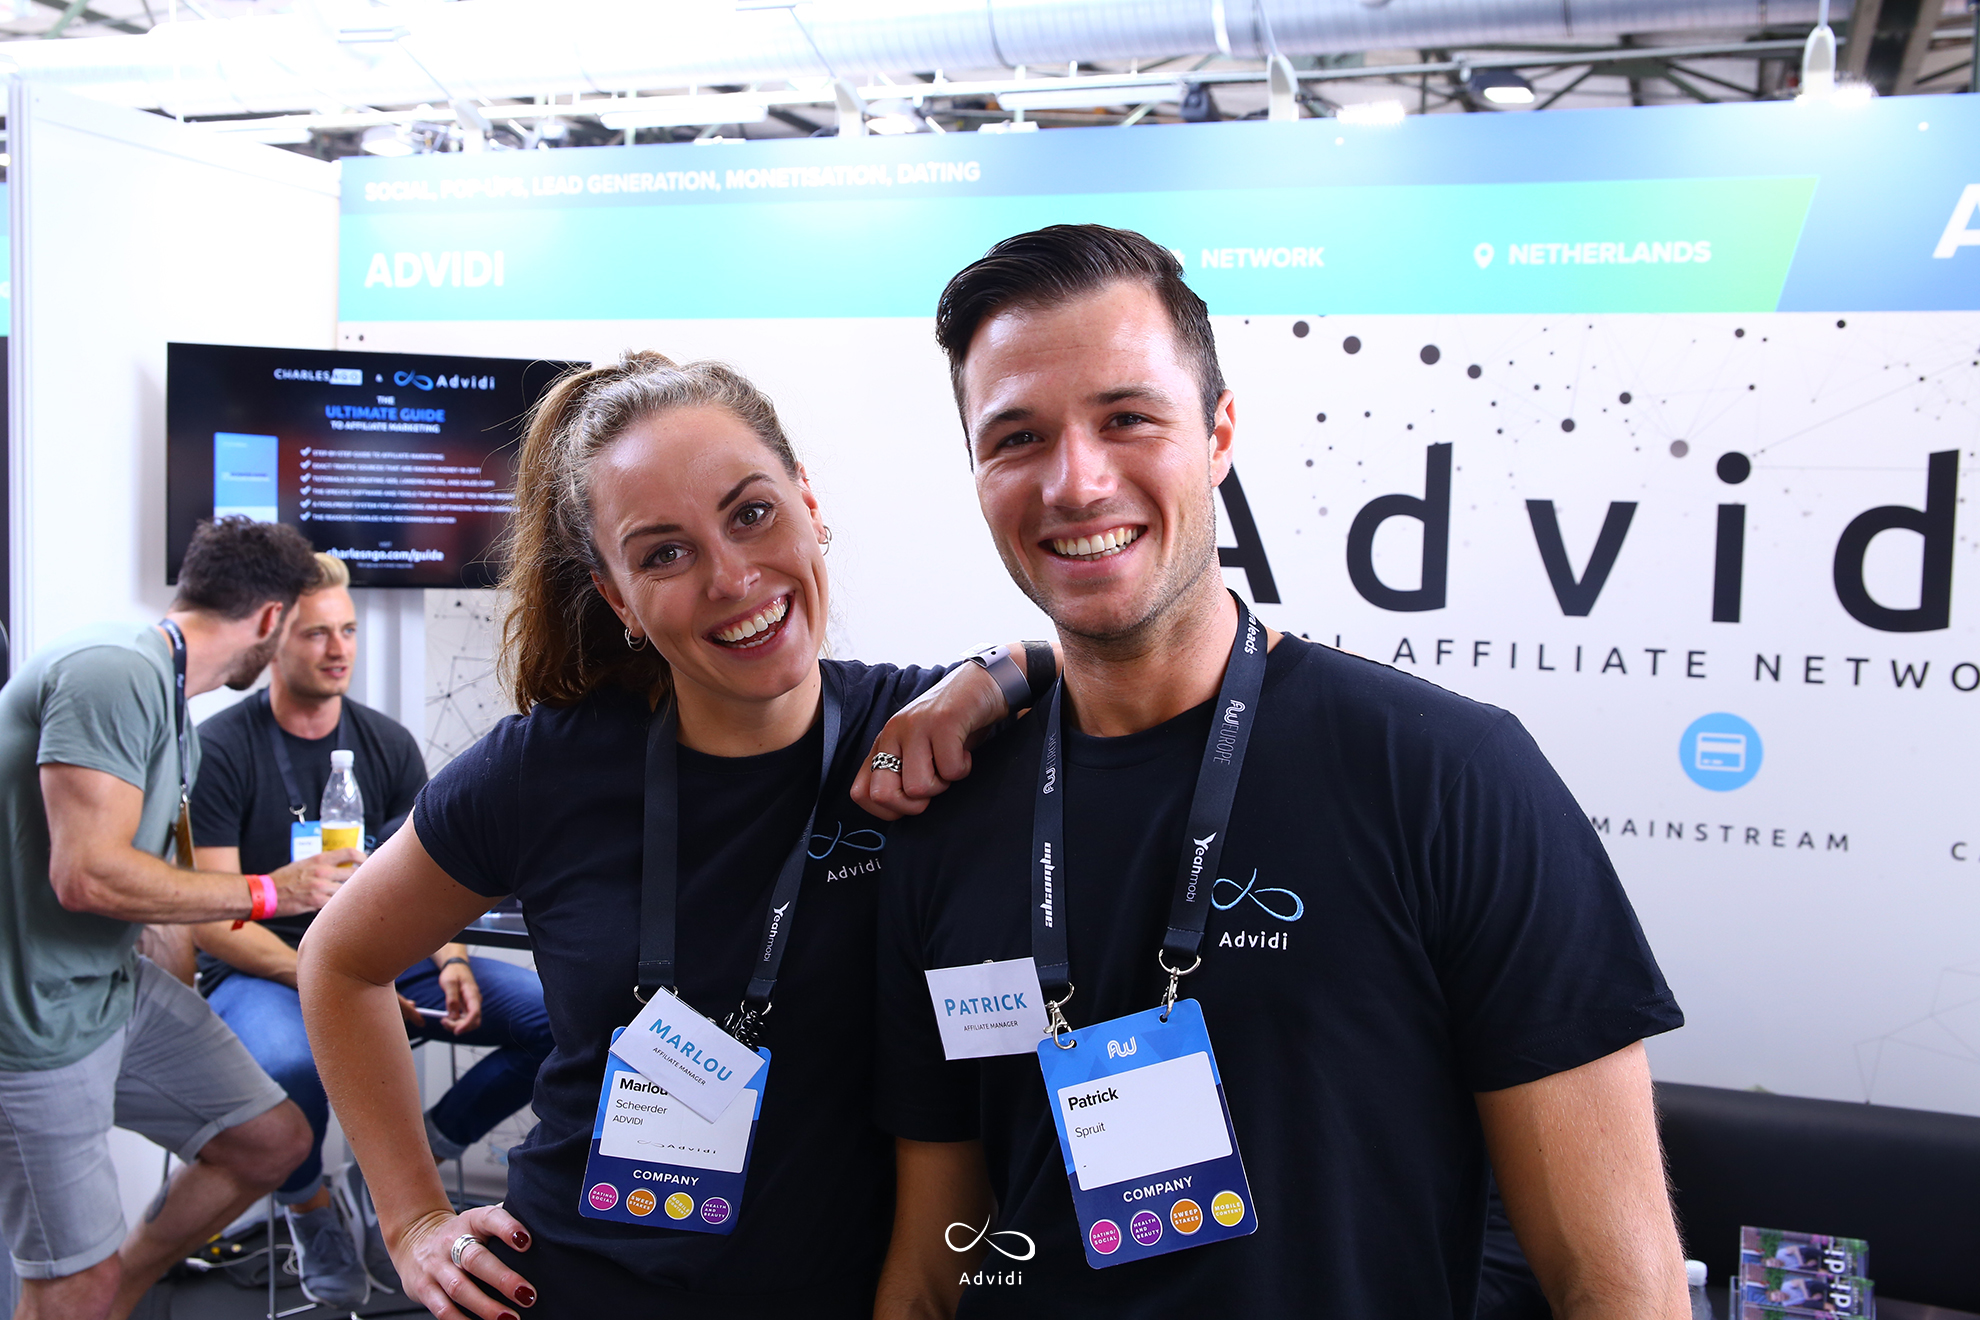 Our Sales Managers Marlou and Patrick at the AWE conference in Berlin 2017